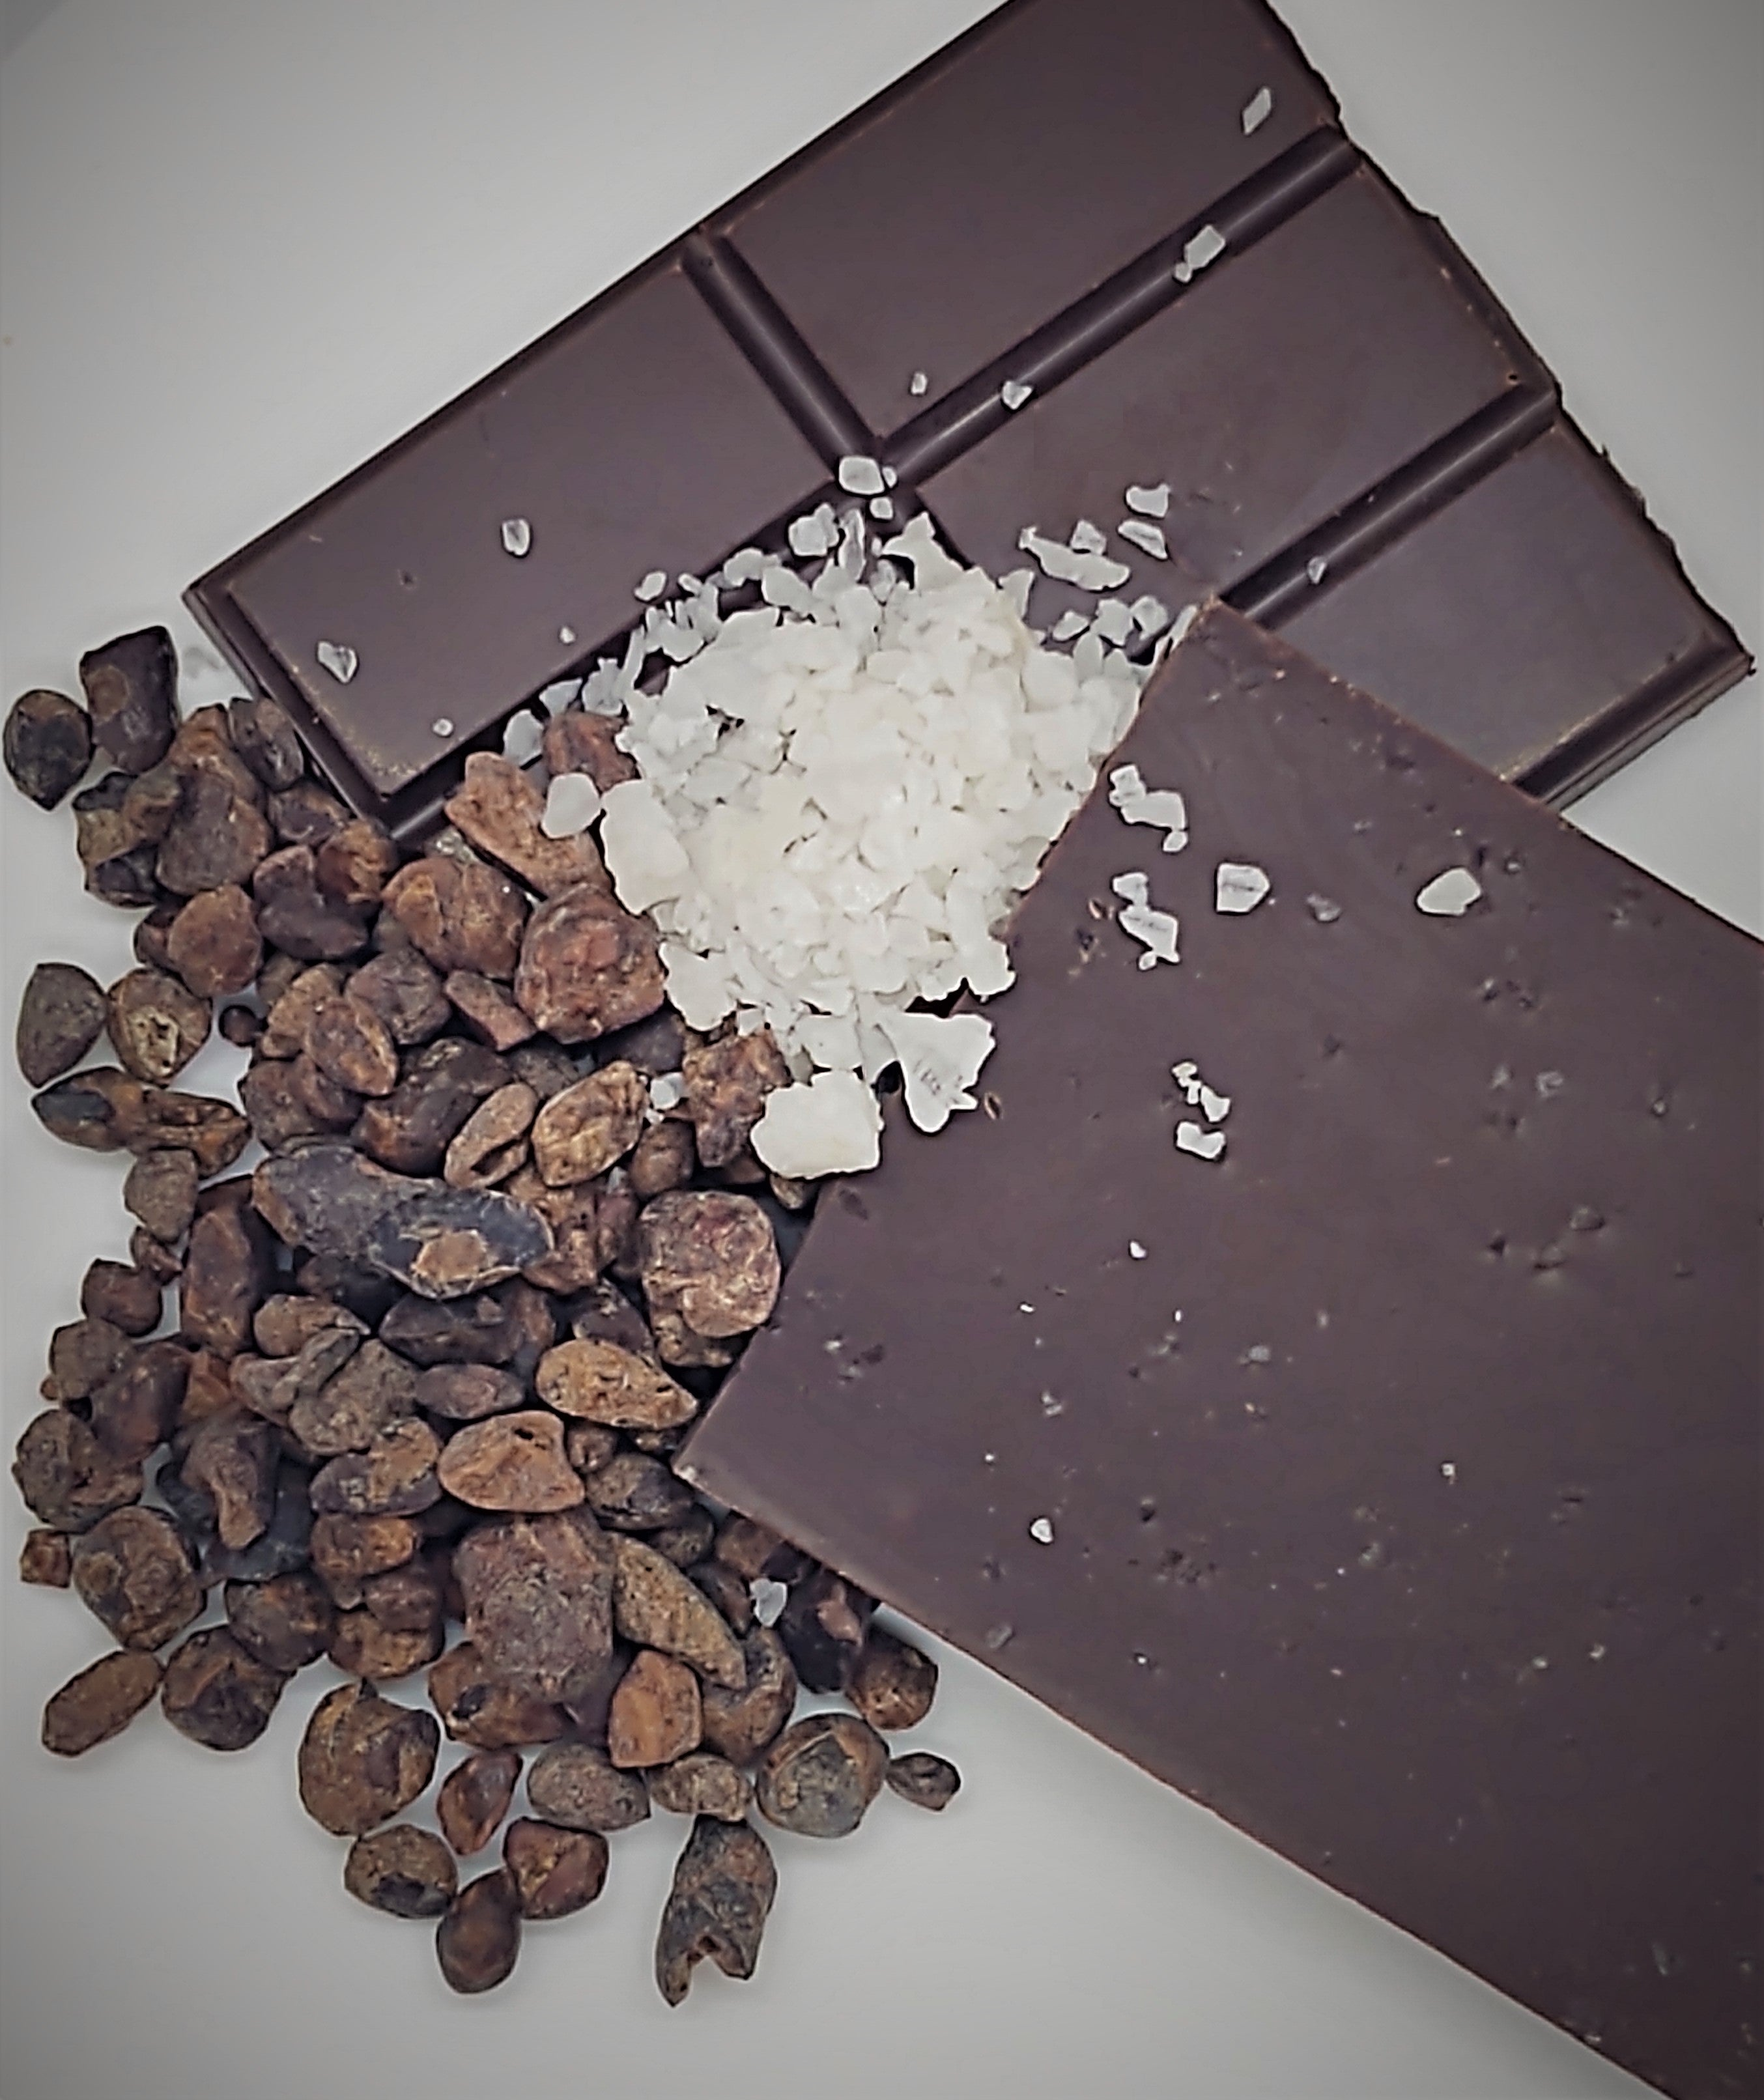 Pictured: Solid dark chocolate bar mounted by raw sea salt and cocoa nibs